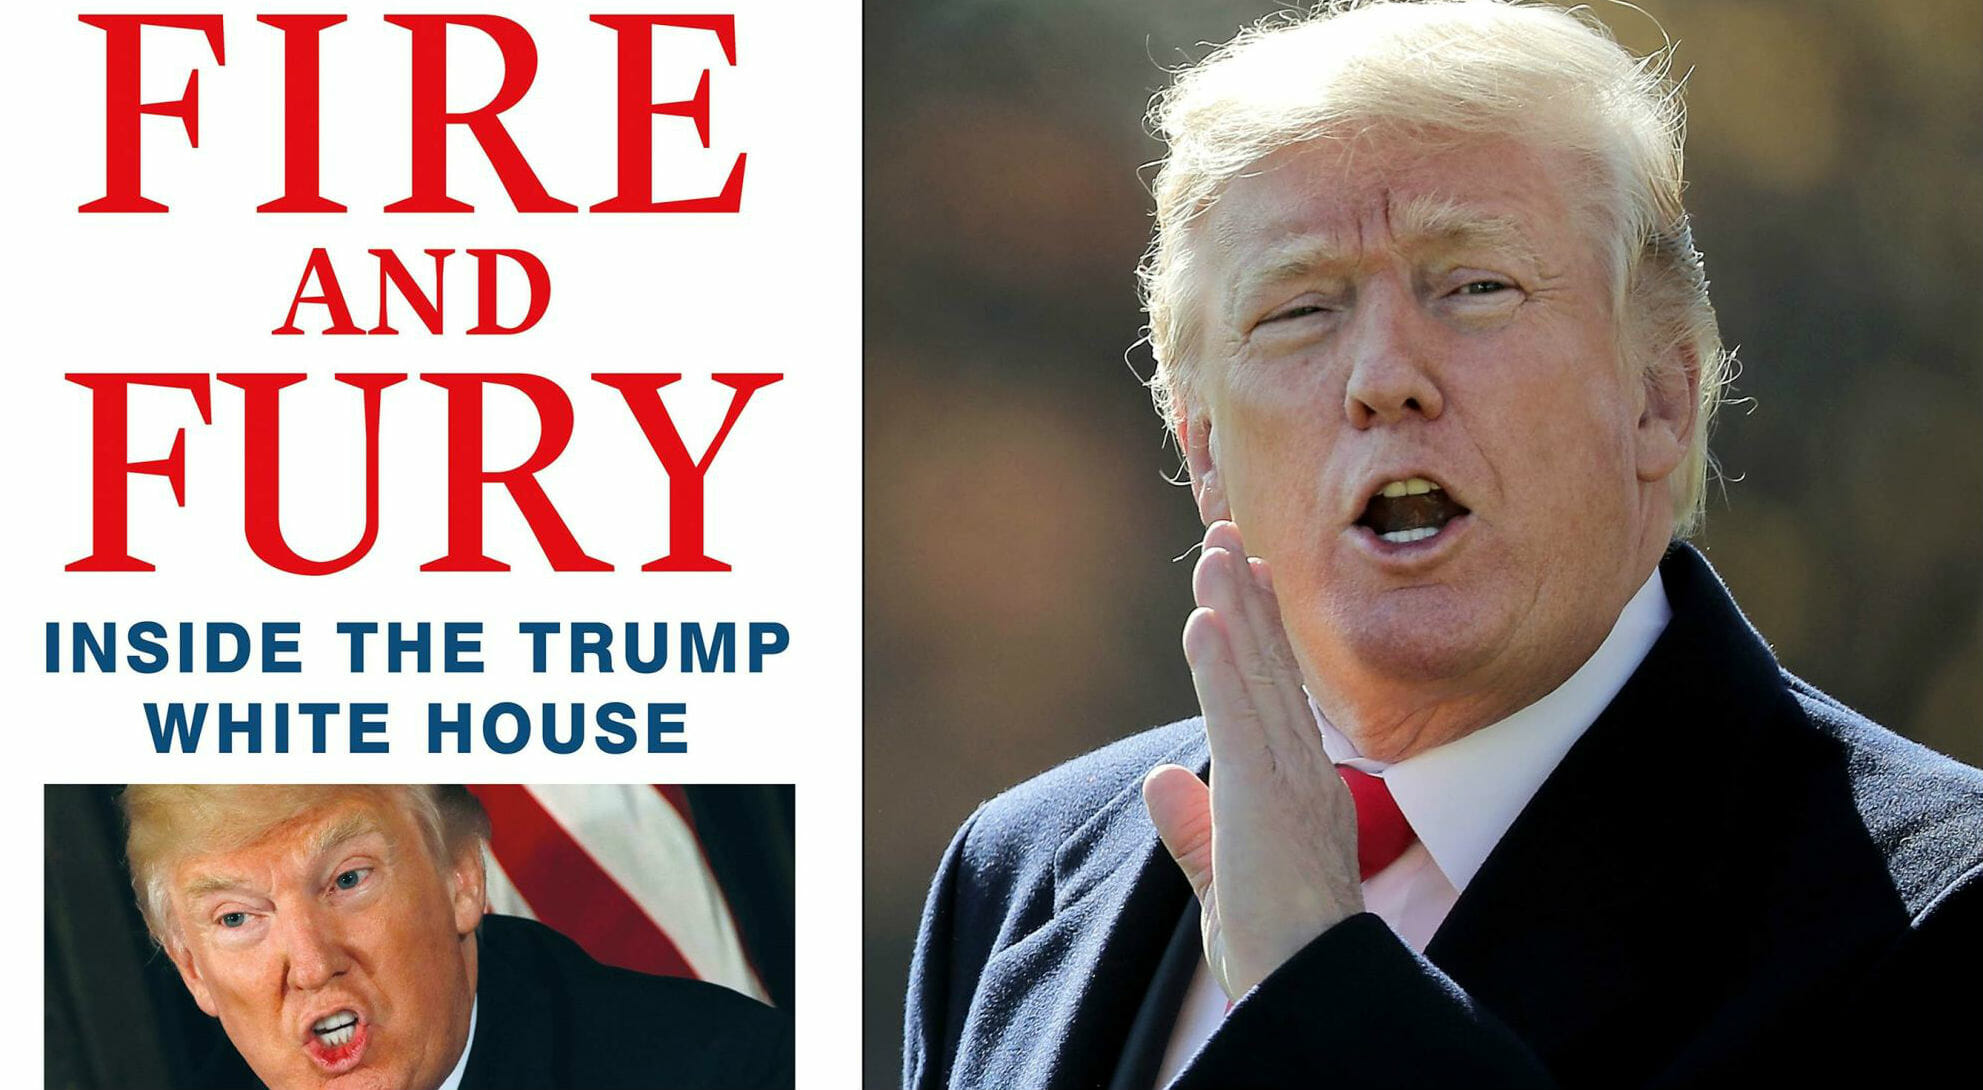 """Il caso """"Fire and Fury: inside the Trump White House"""""""